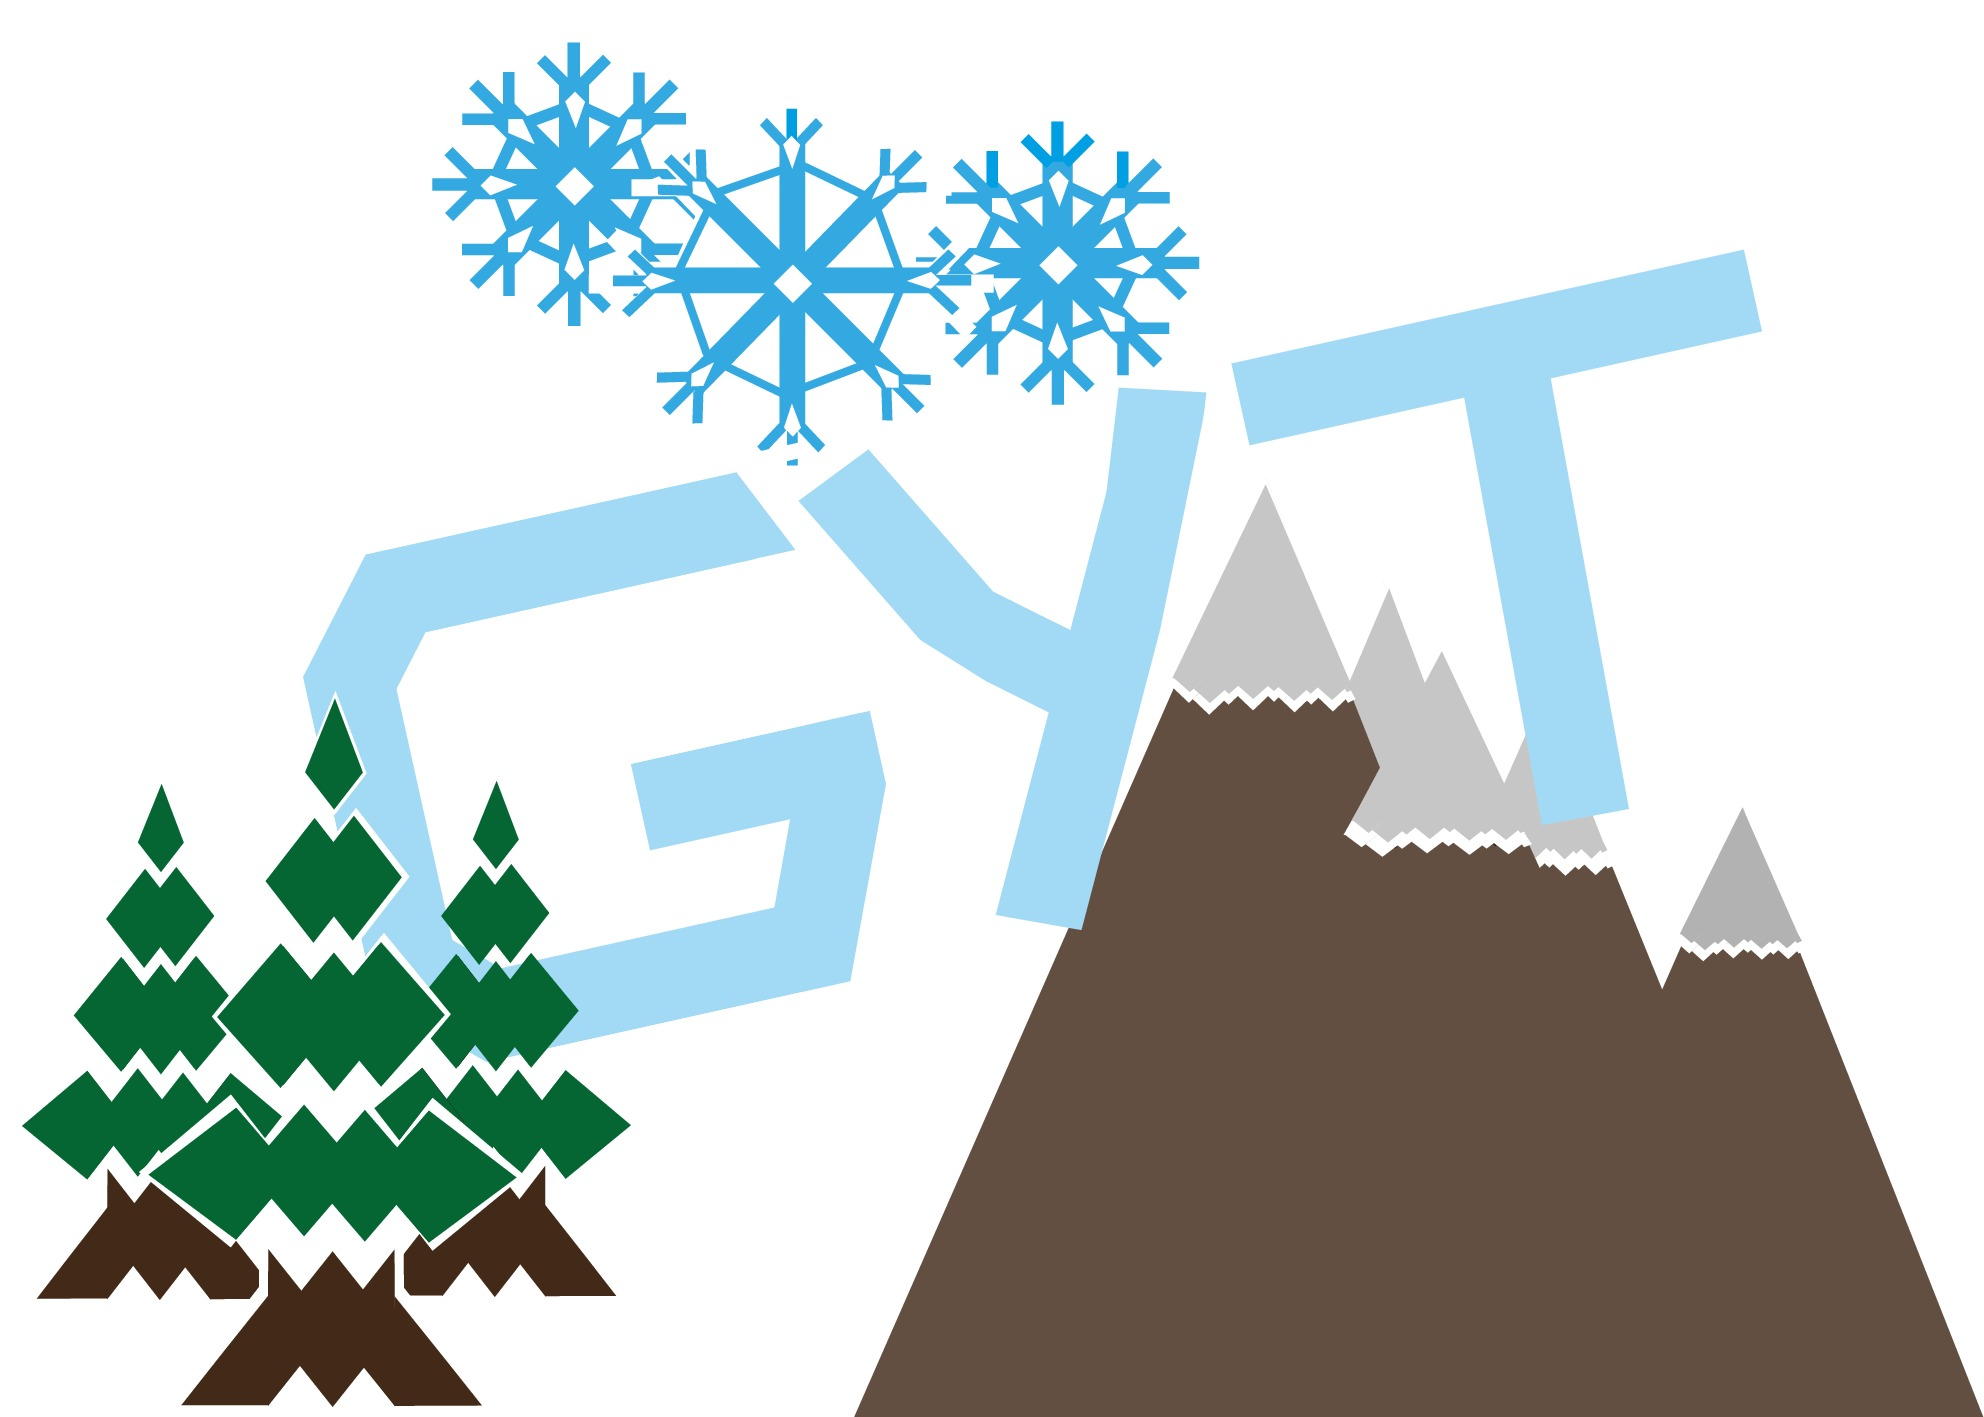 GYT winter.ai